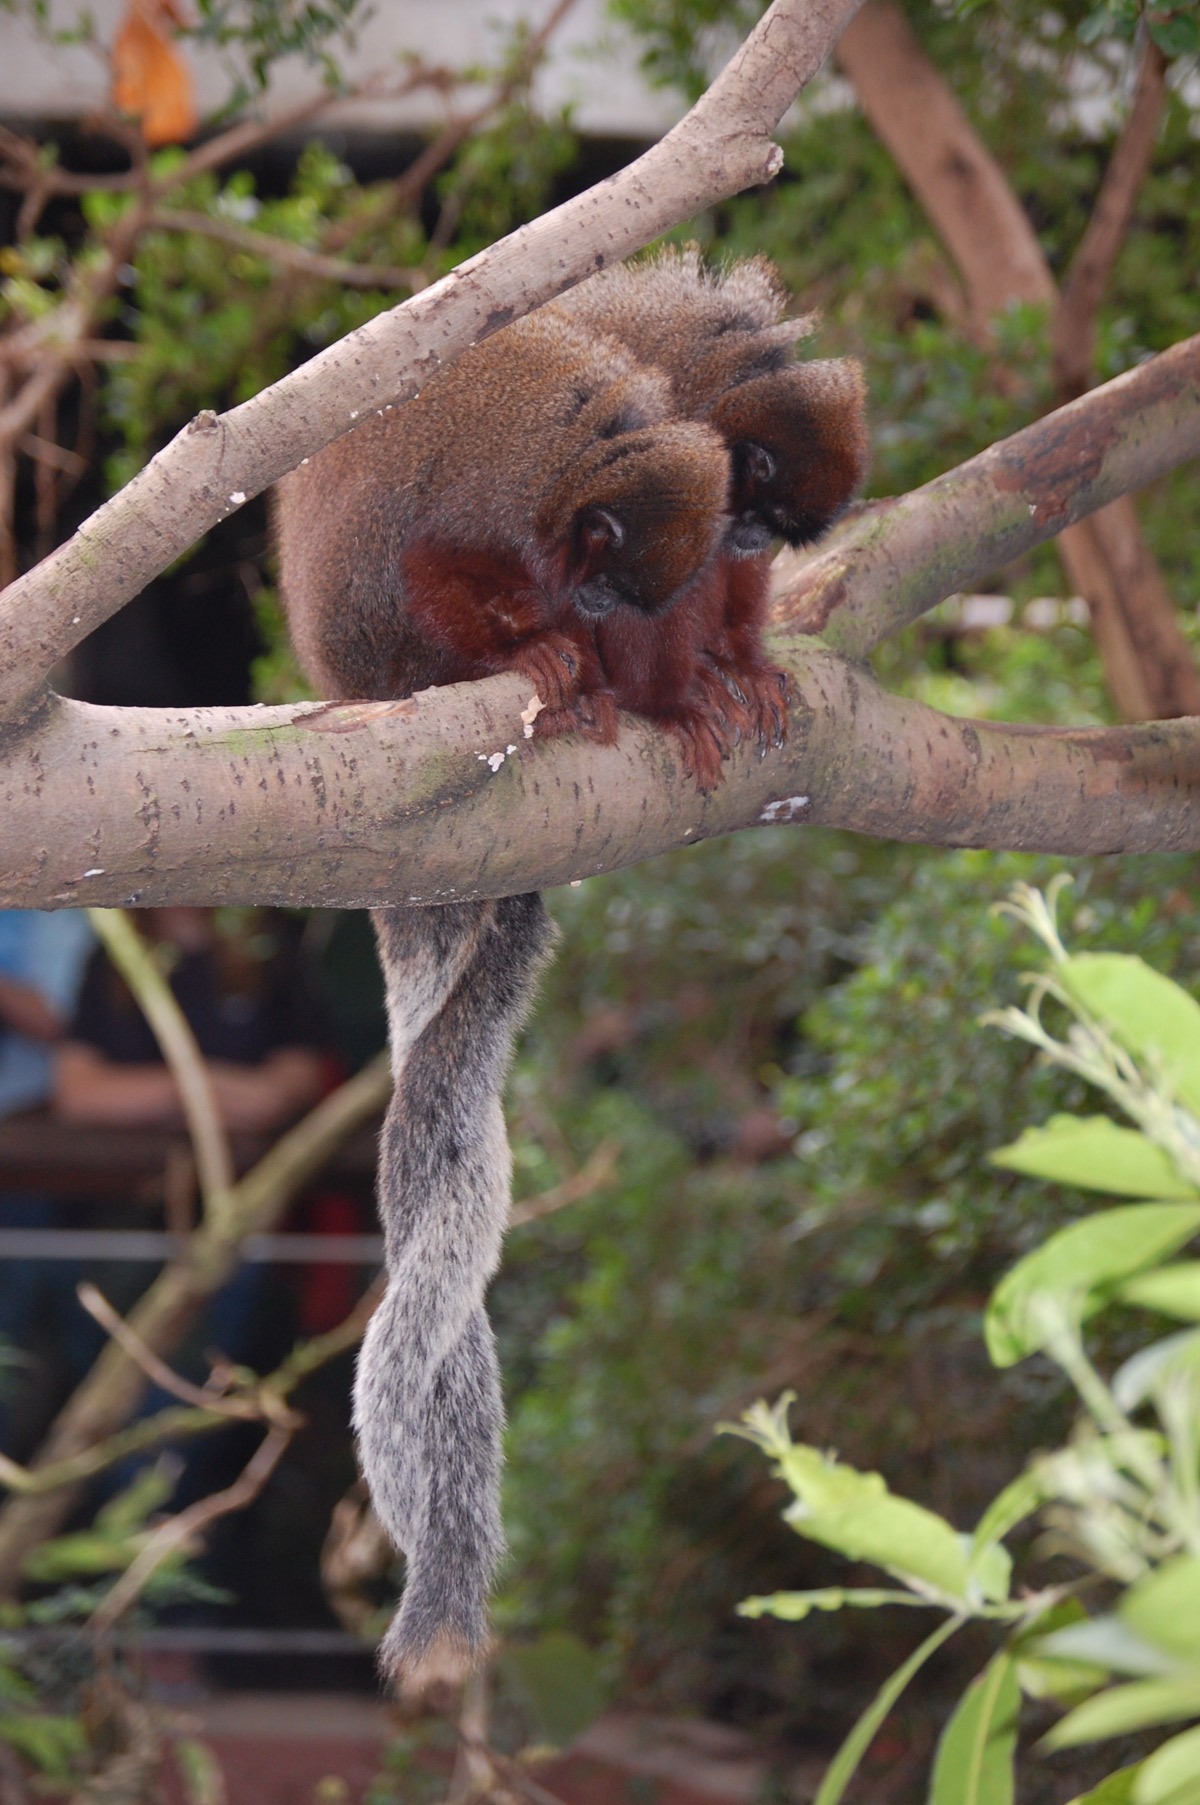 Two reddish-brown monkeys sit side-by-side on branch looking down, their long, furry gray tails twisted together